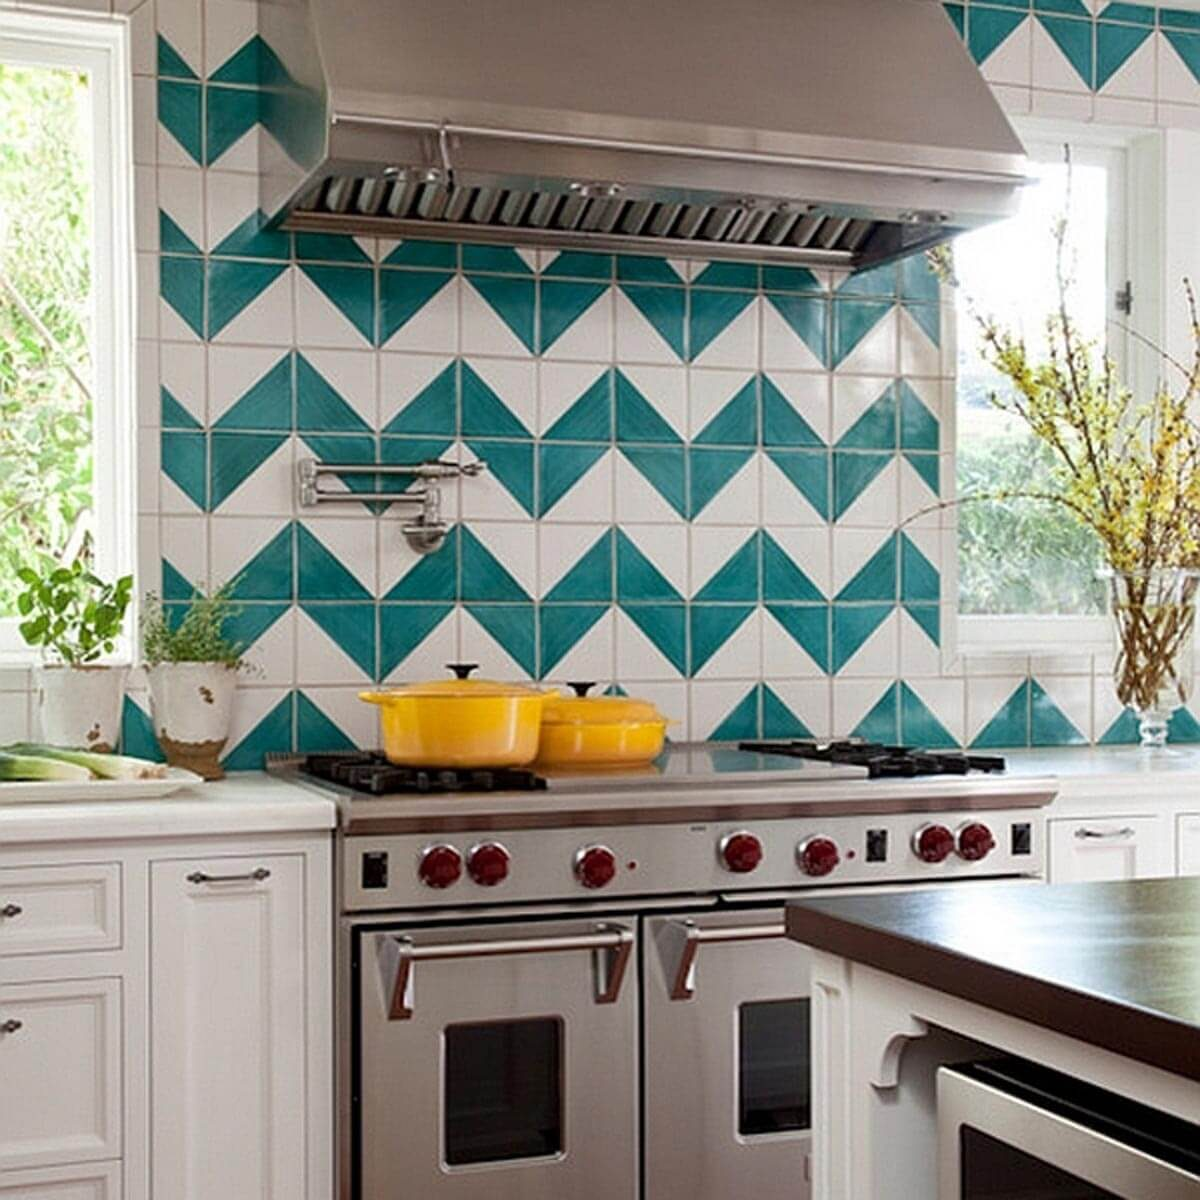 The 30 Backsplash Ideas Your Kitchen Can\'t Live Without | The Family ...